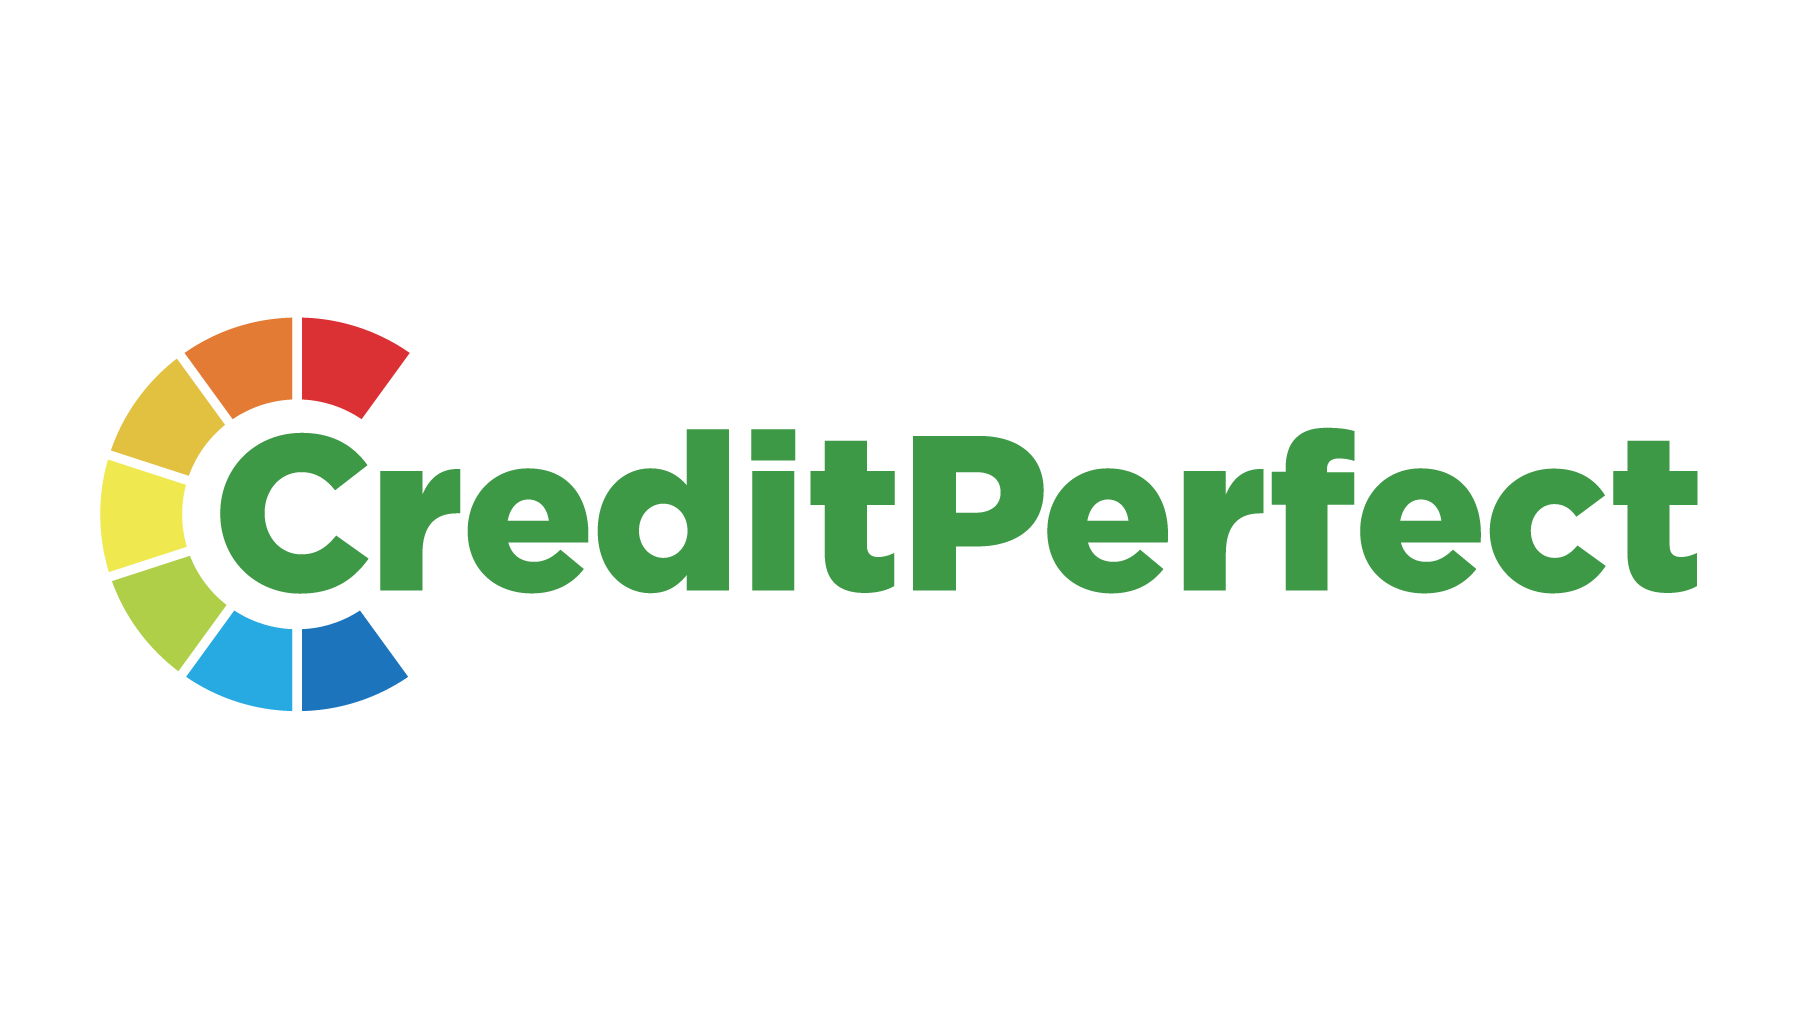 Read credit perfect Reviews